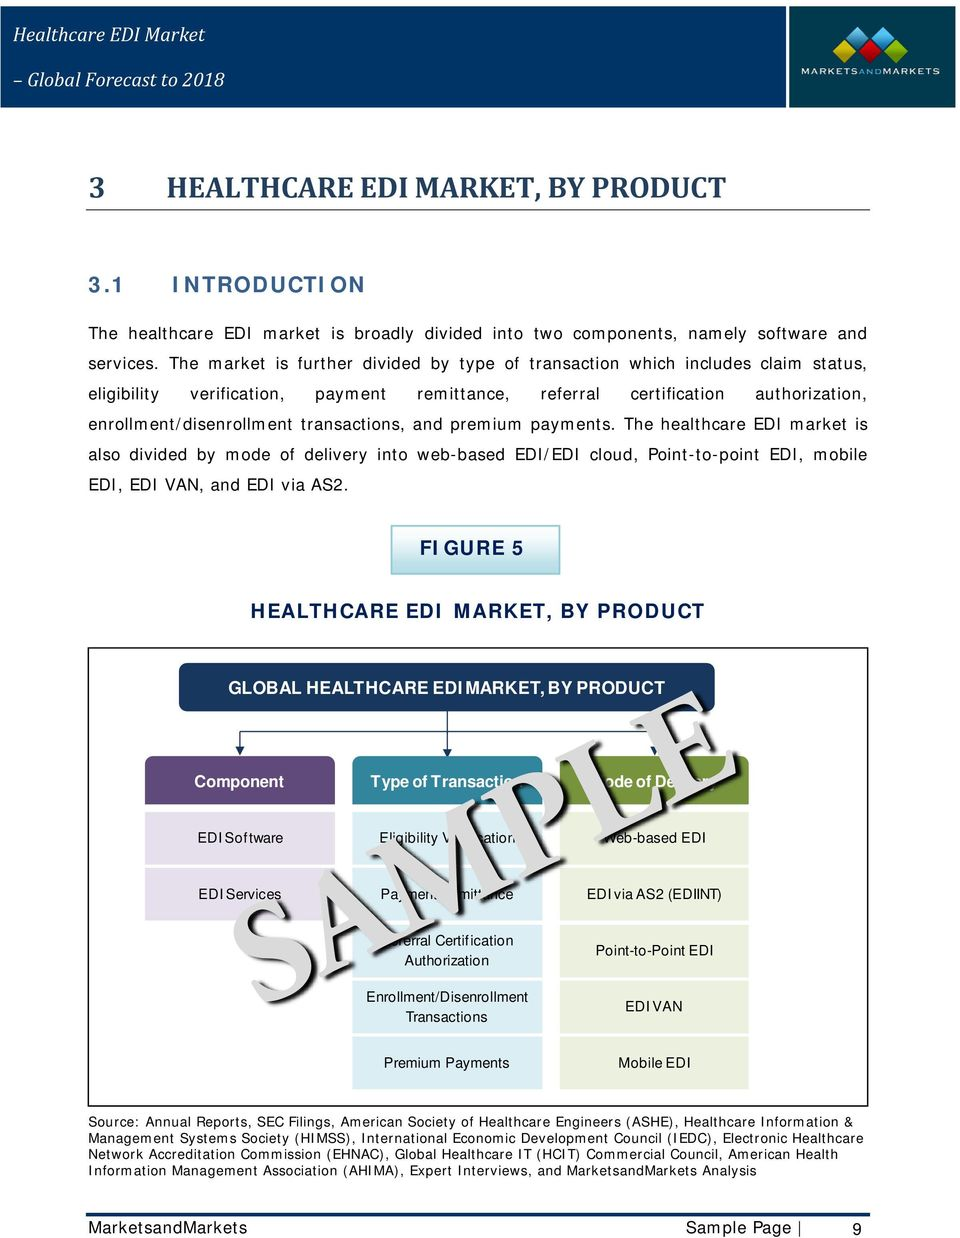 transactions, and premium payments. The healthcare EDI market is also divided by mode of delivery into web-based EDI/EDI cloud, Point-to-point EDI, mobile EDI, EDI VAN, and EDI via AS2.